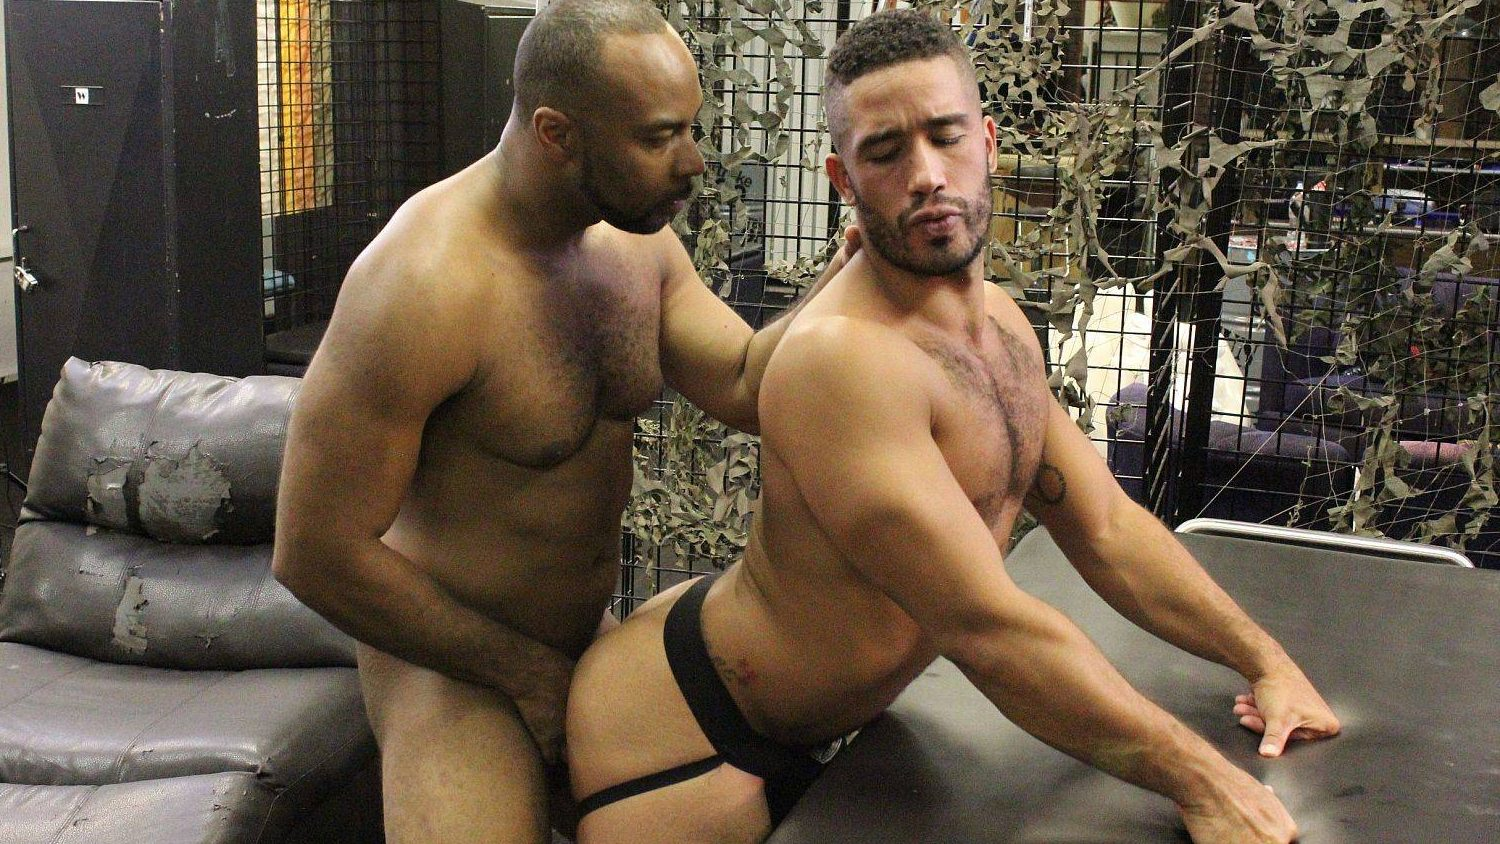 Ray Diesel and Trey Turner Bareback – Part 1